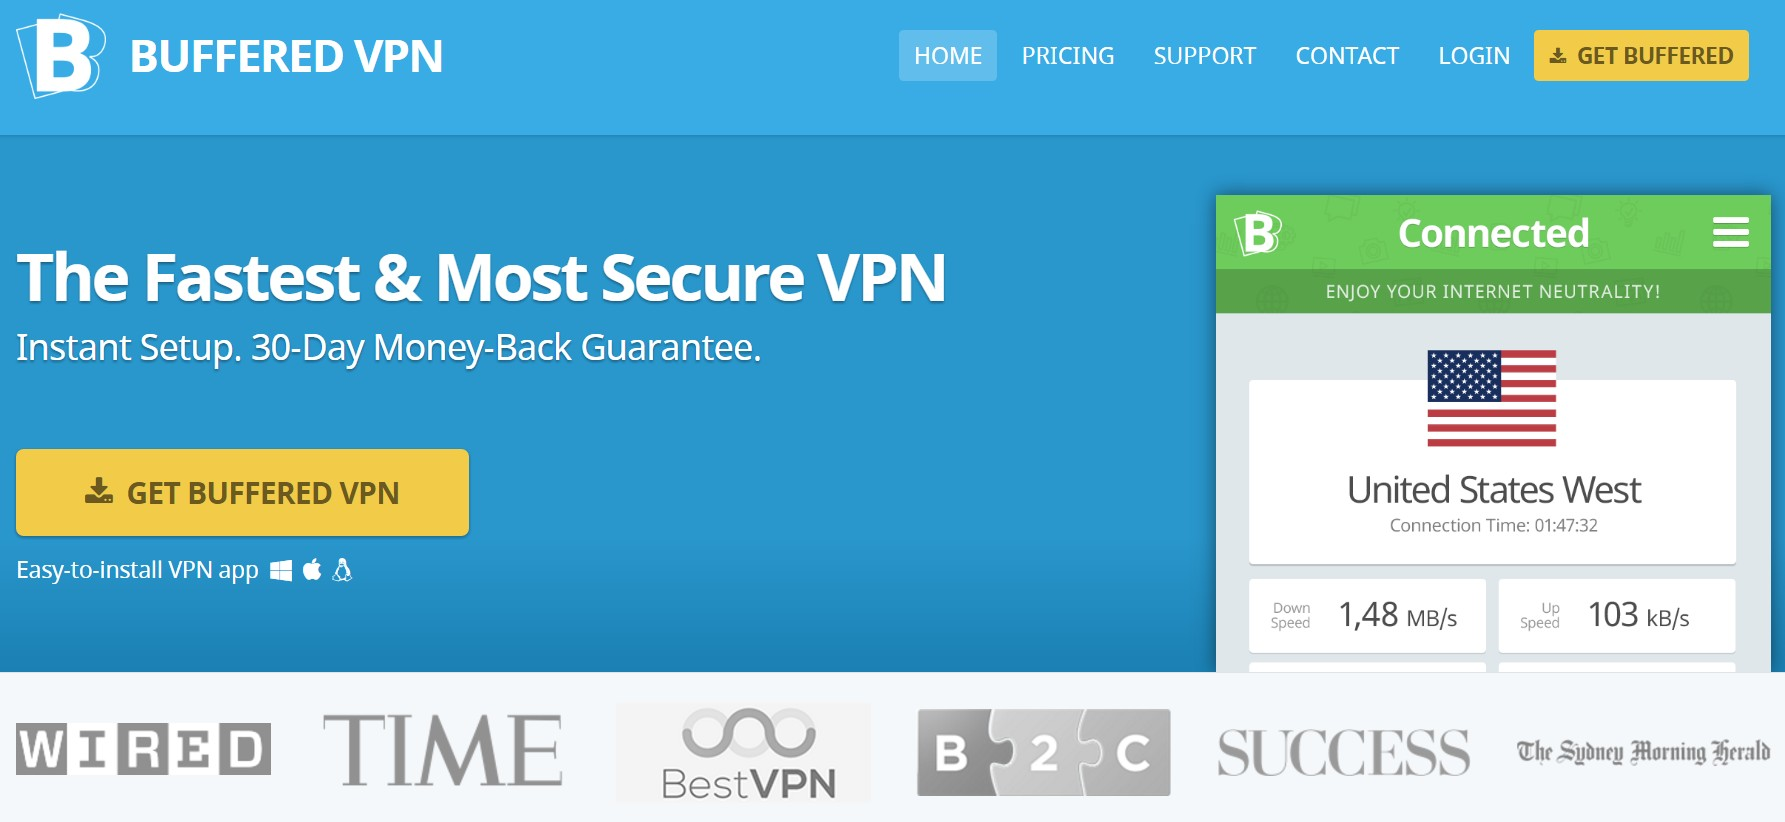 Buffered VPN Home Page - Best Gaming VPN